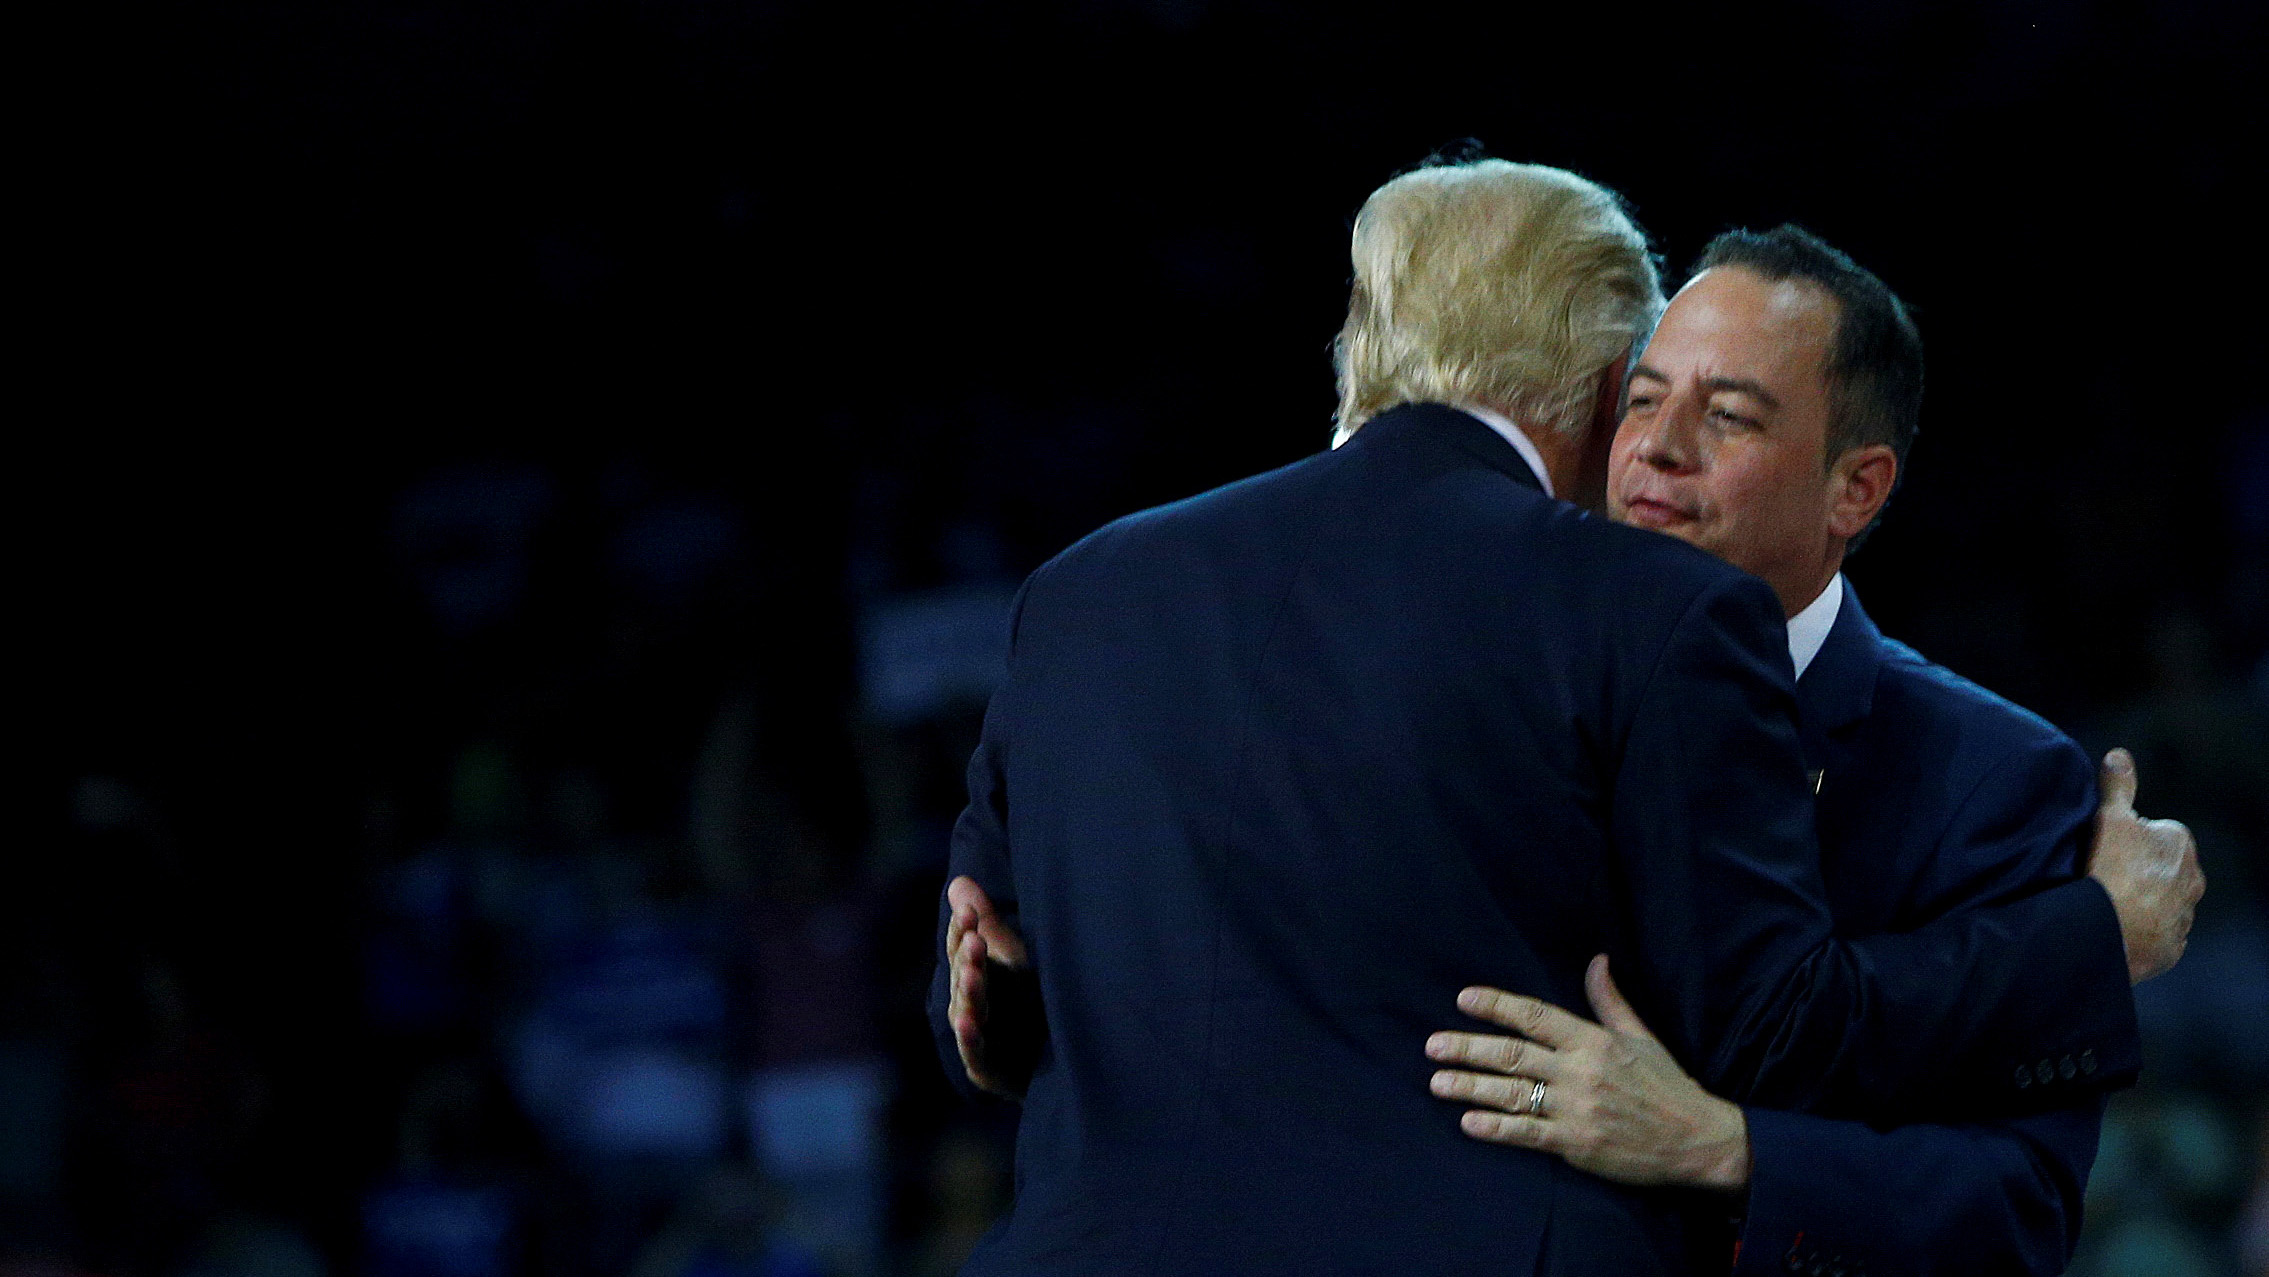 Republican U.S. presidential nominee Donald Trump greets Republican National Committee chairman Reince Priebus during a campaign rally at the Erie Insurance Arena in Erie, Pennsylvania August 12, 2016. REUTERS/Eric Thayer - RTSN11M